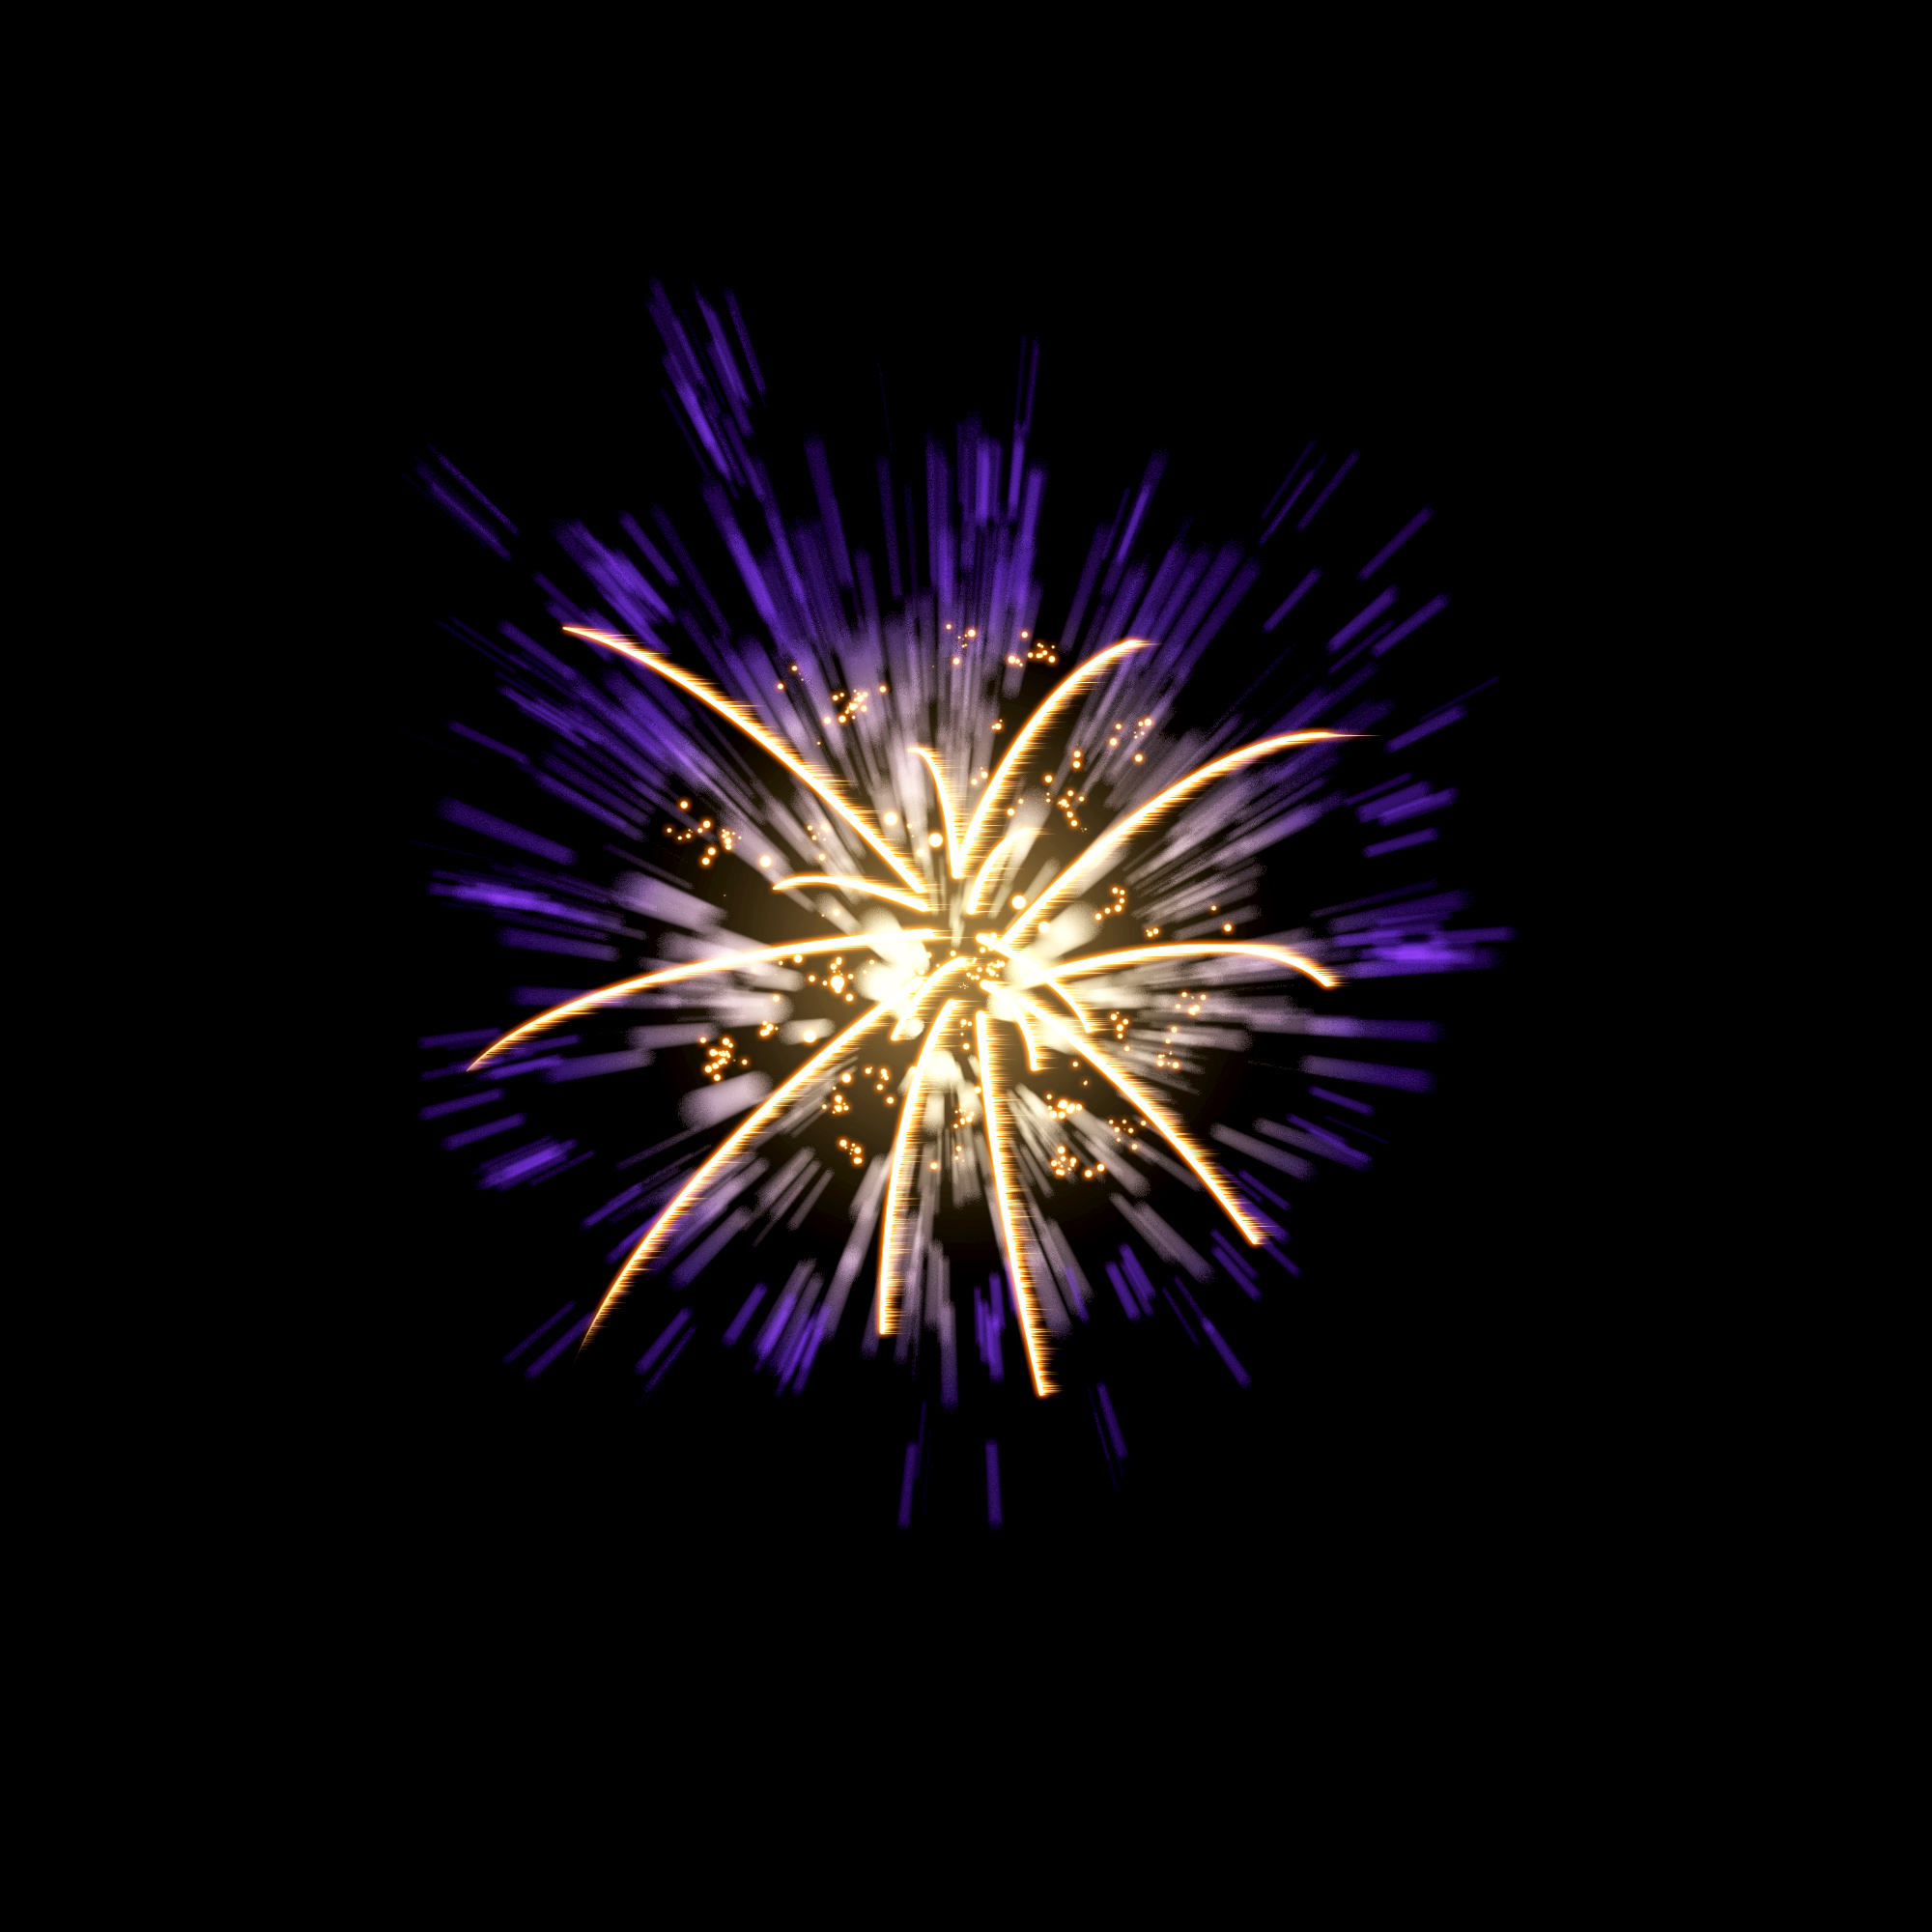 How to create fireworks in photoshop photoshop tutorials how to create fireworks in photoshop new year celebrations baditri Gallery